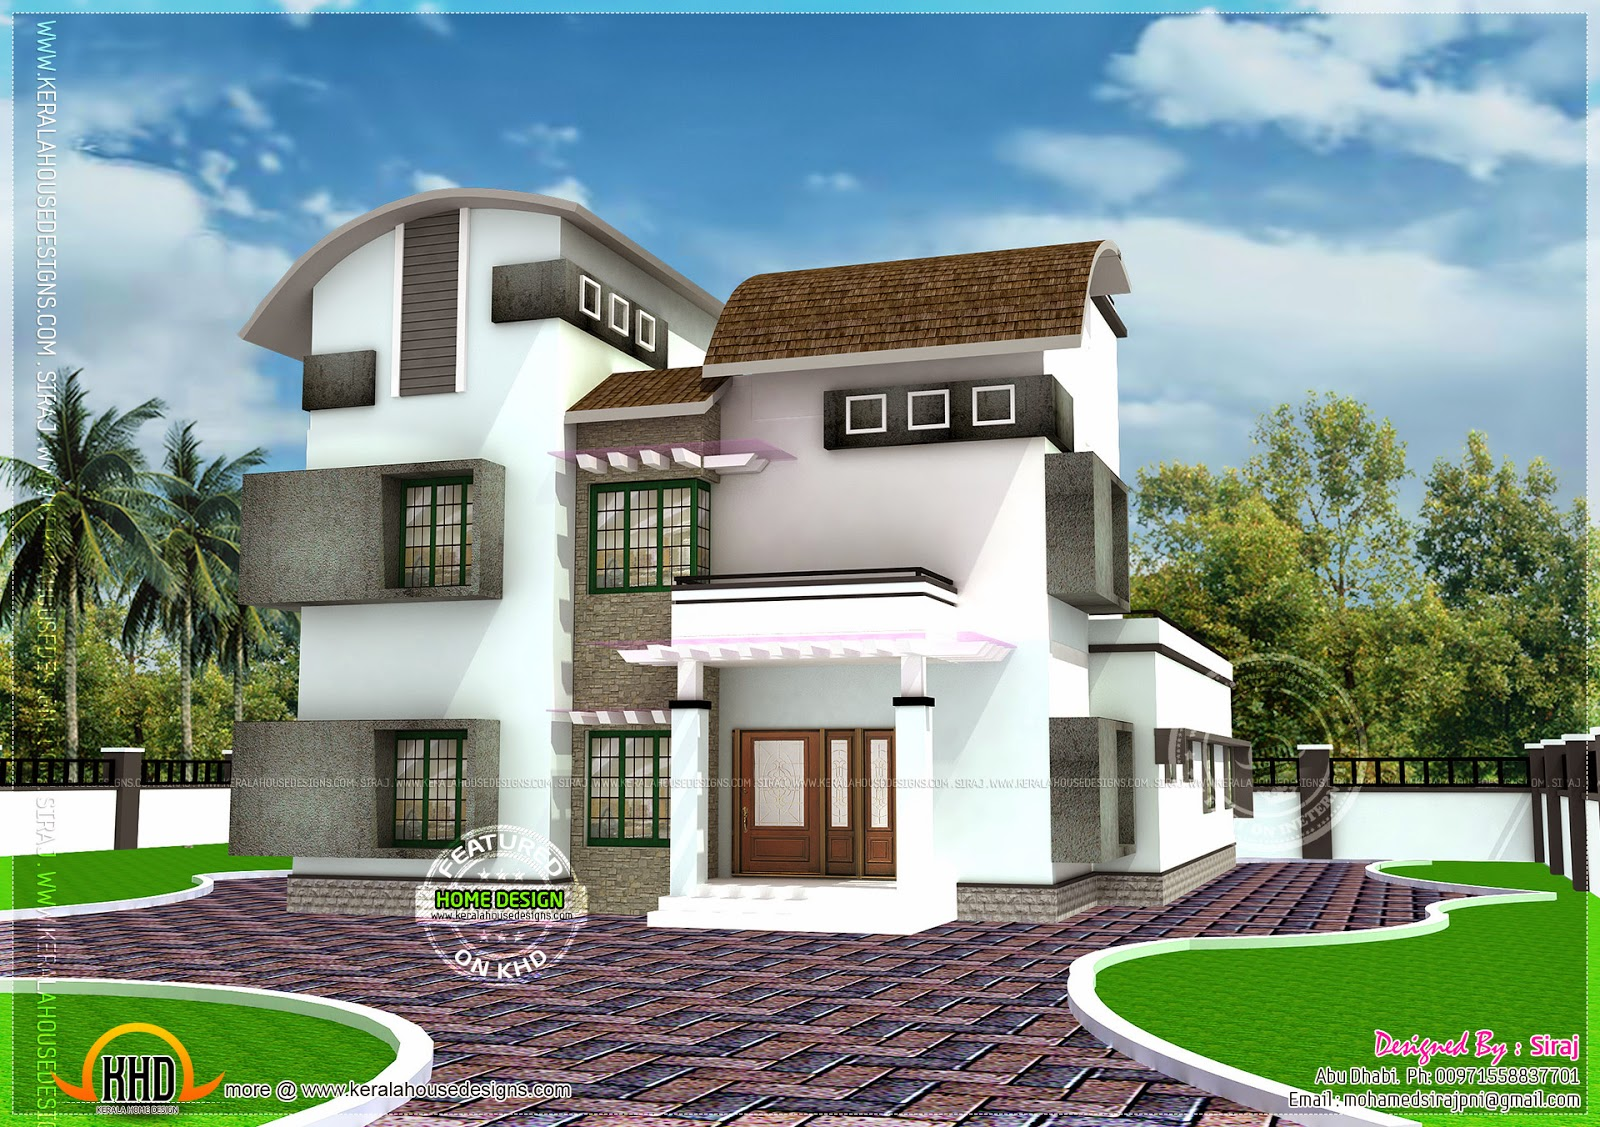 239 square yards modern house home kerala plans for Modern house plans for 1600 sq ft